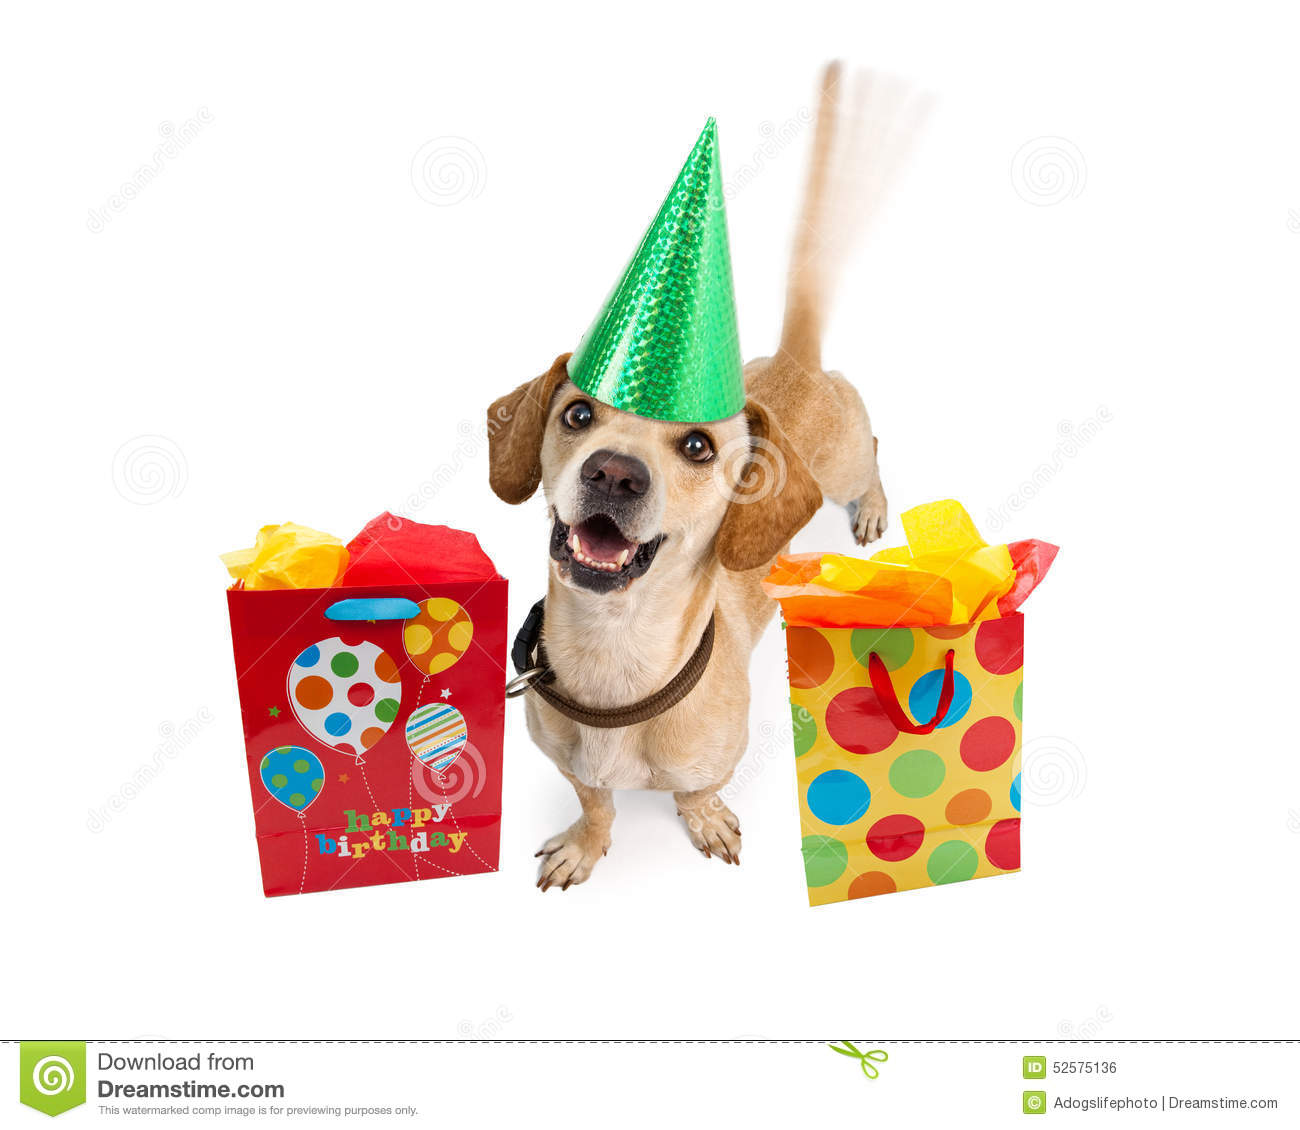 happy birthday dog images free ; happy-birthday-dog-gift-bags-cute-young-puppy-wearing-hat-next-to-colorful-intentional-motion-blur-wagging-tail-52575136